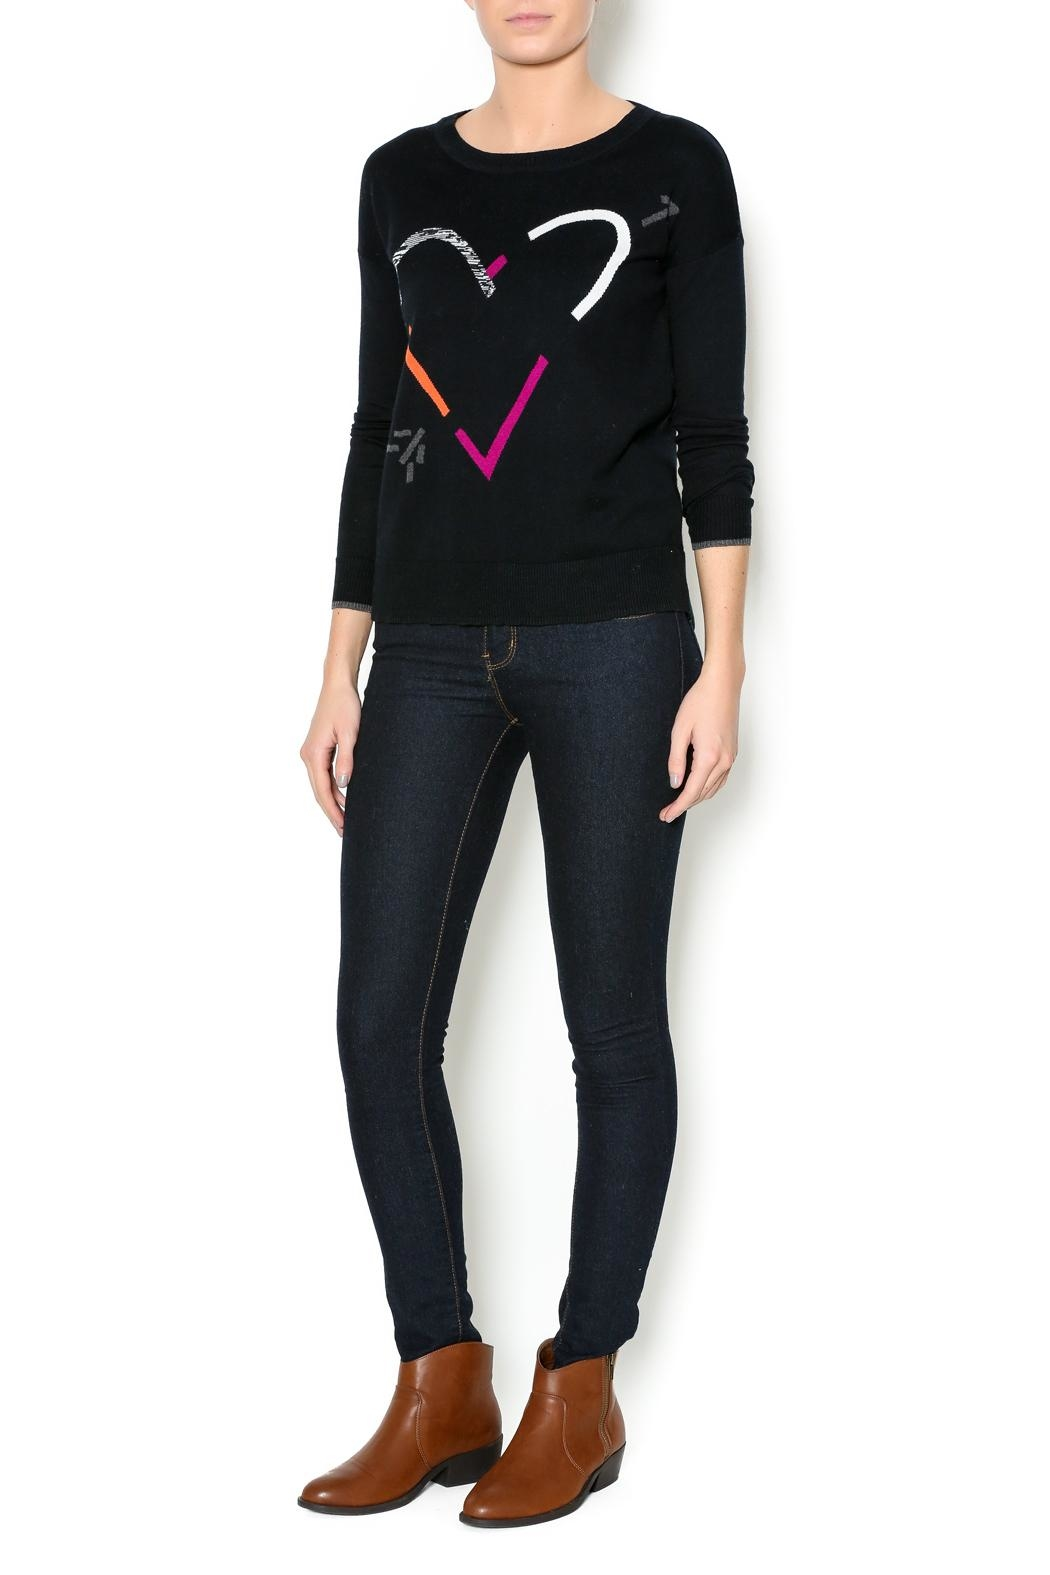 Lisa Todd Heart Crew-Neck Sweater - Side Cropped Image